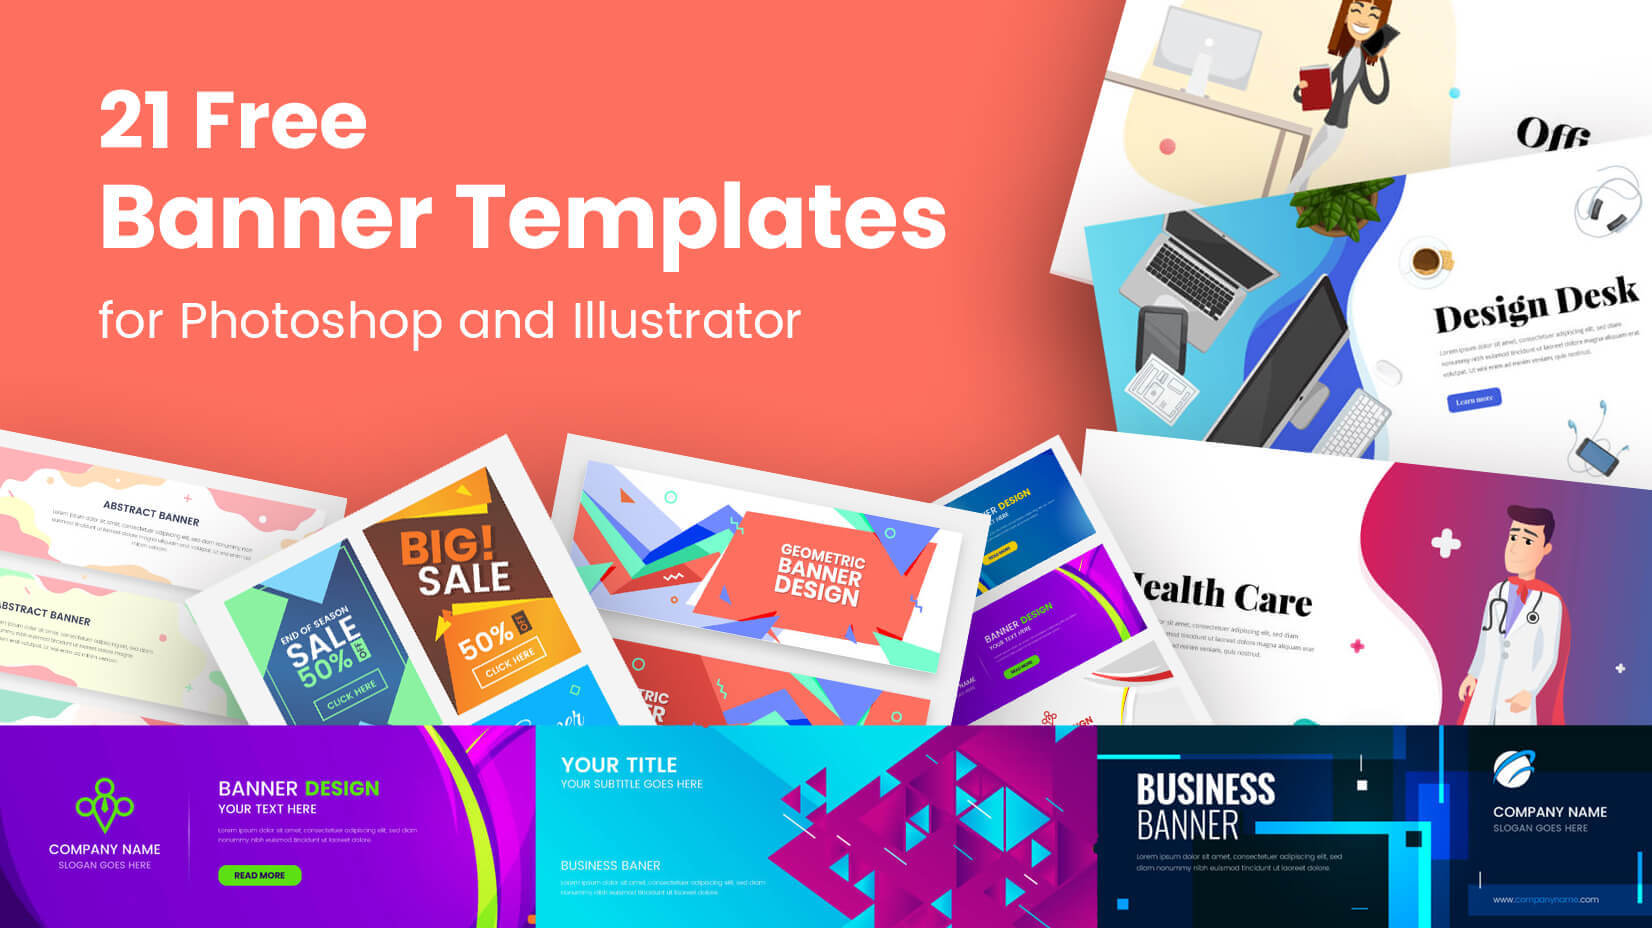 21 Free Banner Templates For Photoshop And Illustrator Pertaining To Animated Banner Template